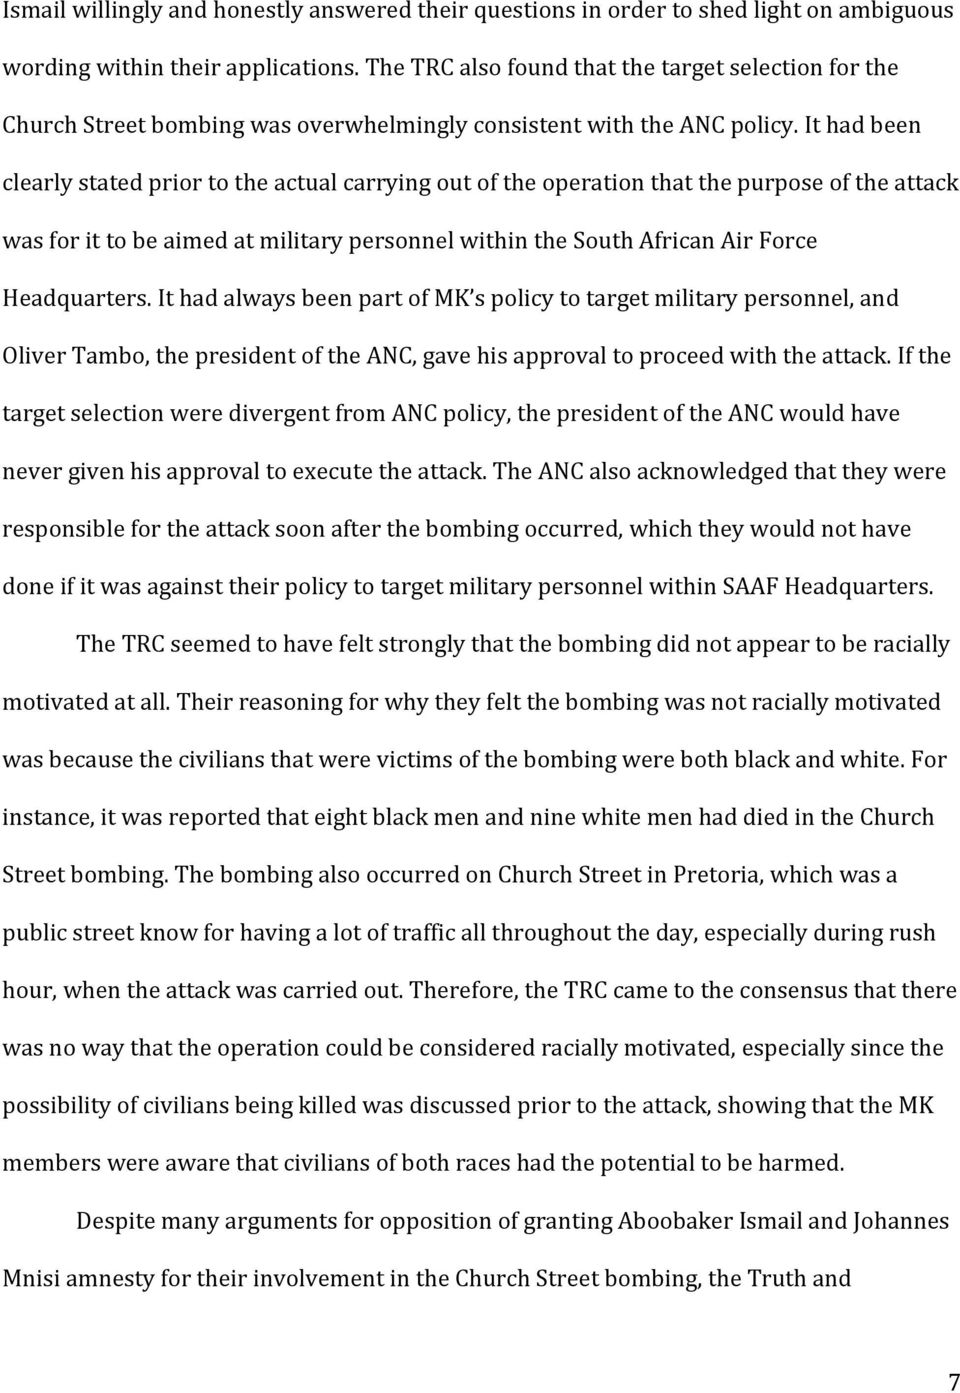 It had been clearly stated prior to the actual carrying out of the operation that the purpose of the attack was for it to be aimed at military personnel within the South African Air Force